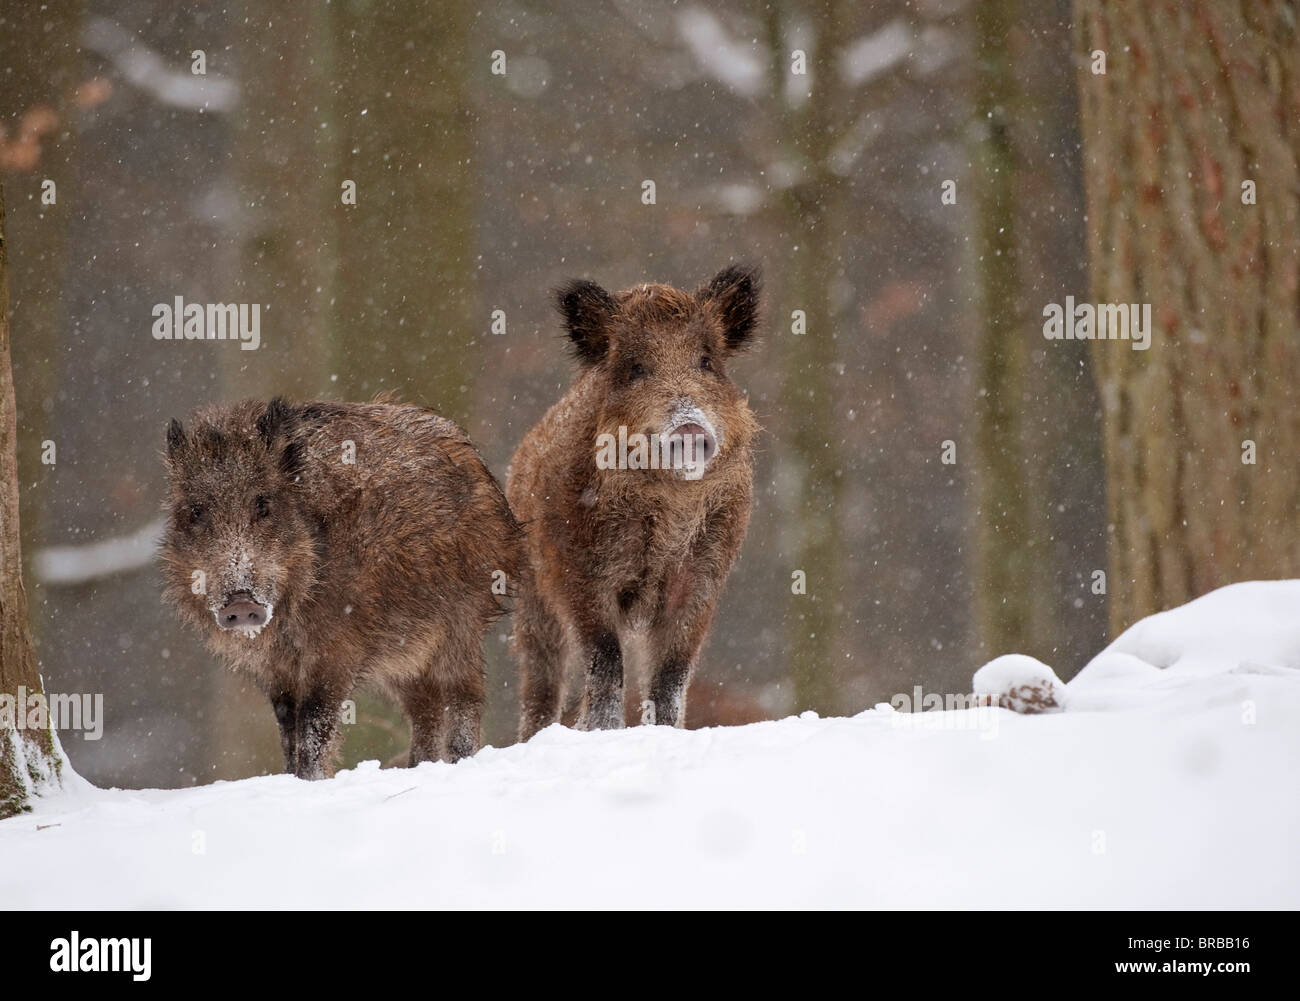 two wild boars in snow / Sus scrofa - Stock Image